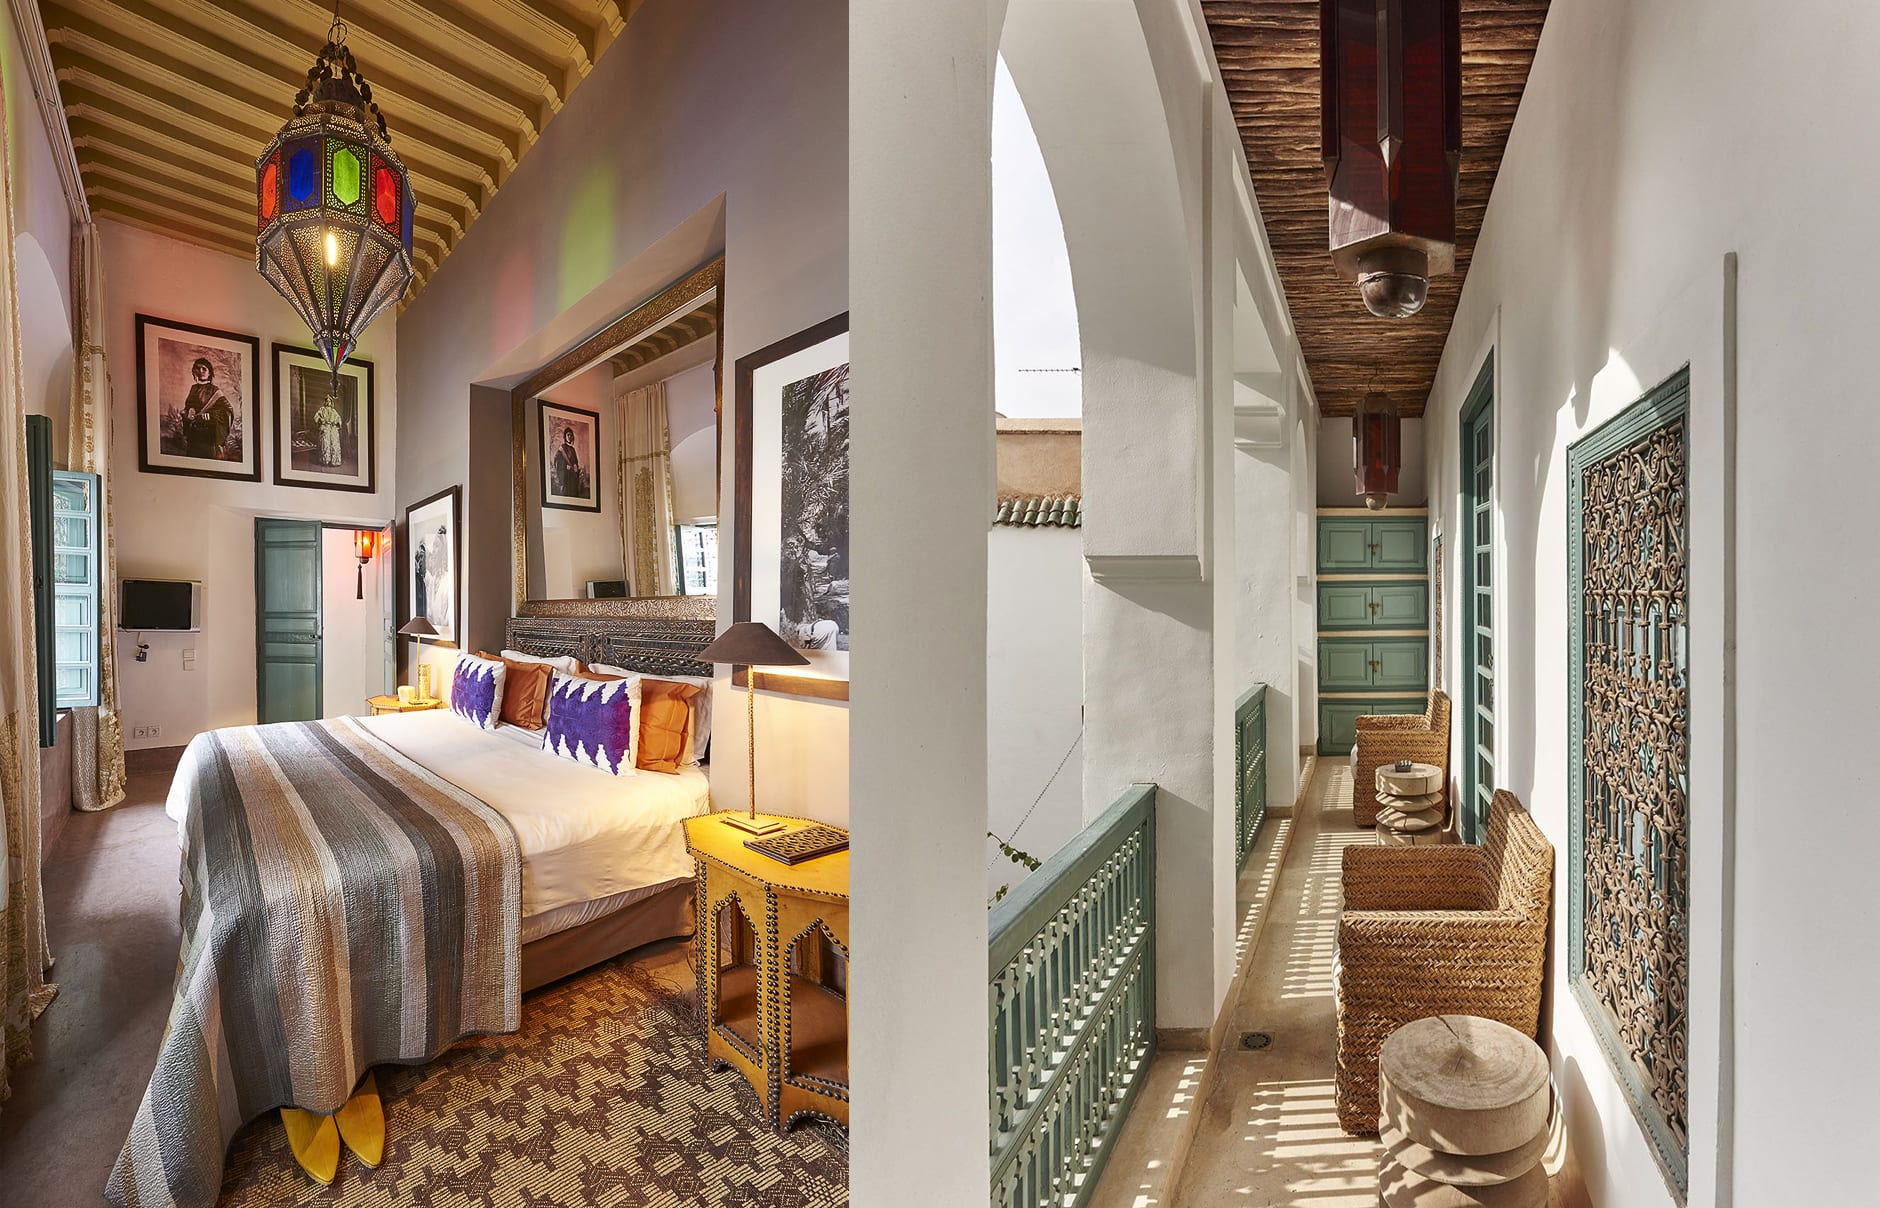 Ryad Dyor, Marrakech, Morocco. Hotel Review by TravelPlusStyle. Photo © Ryad Dyor